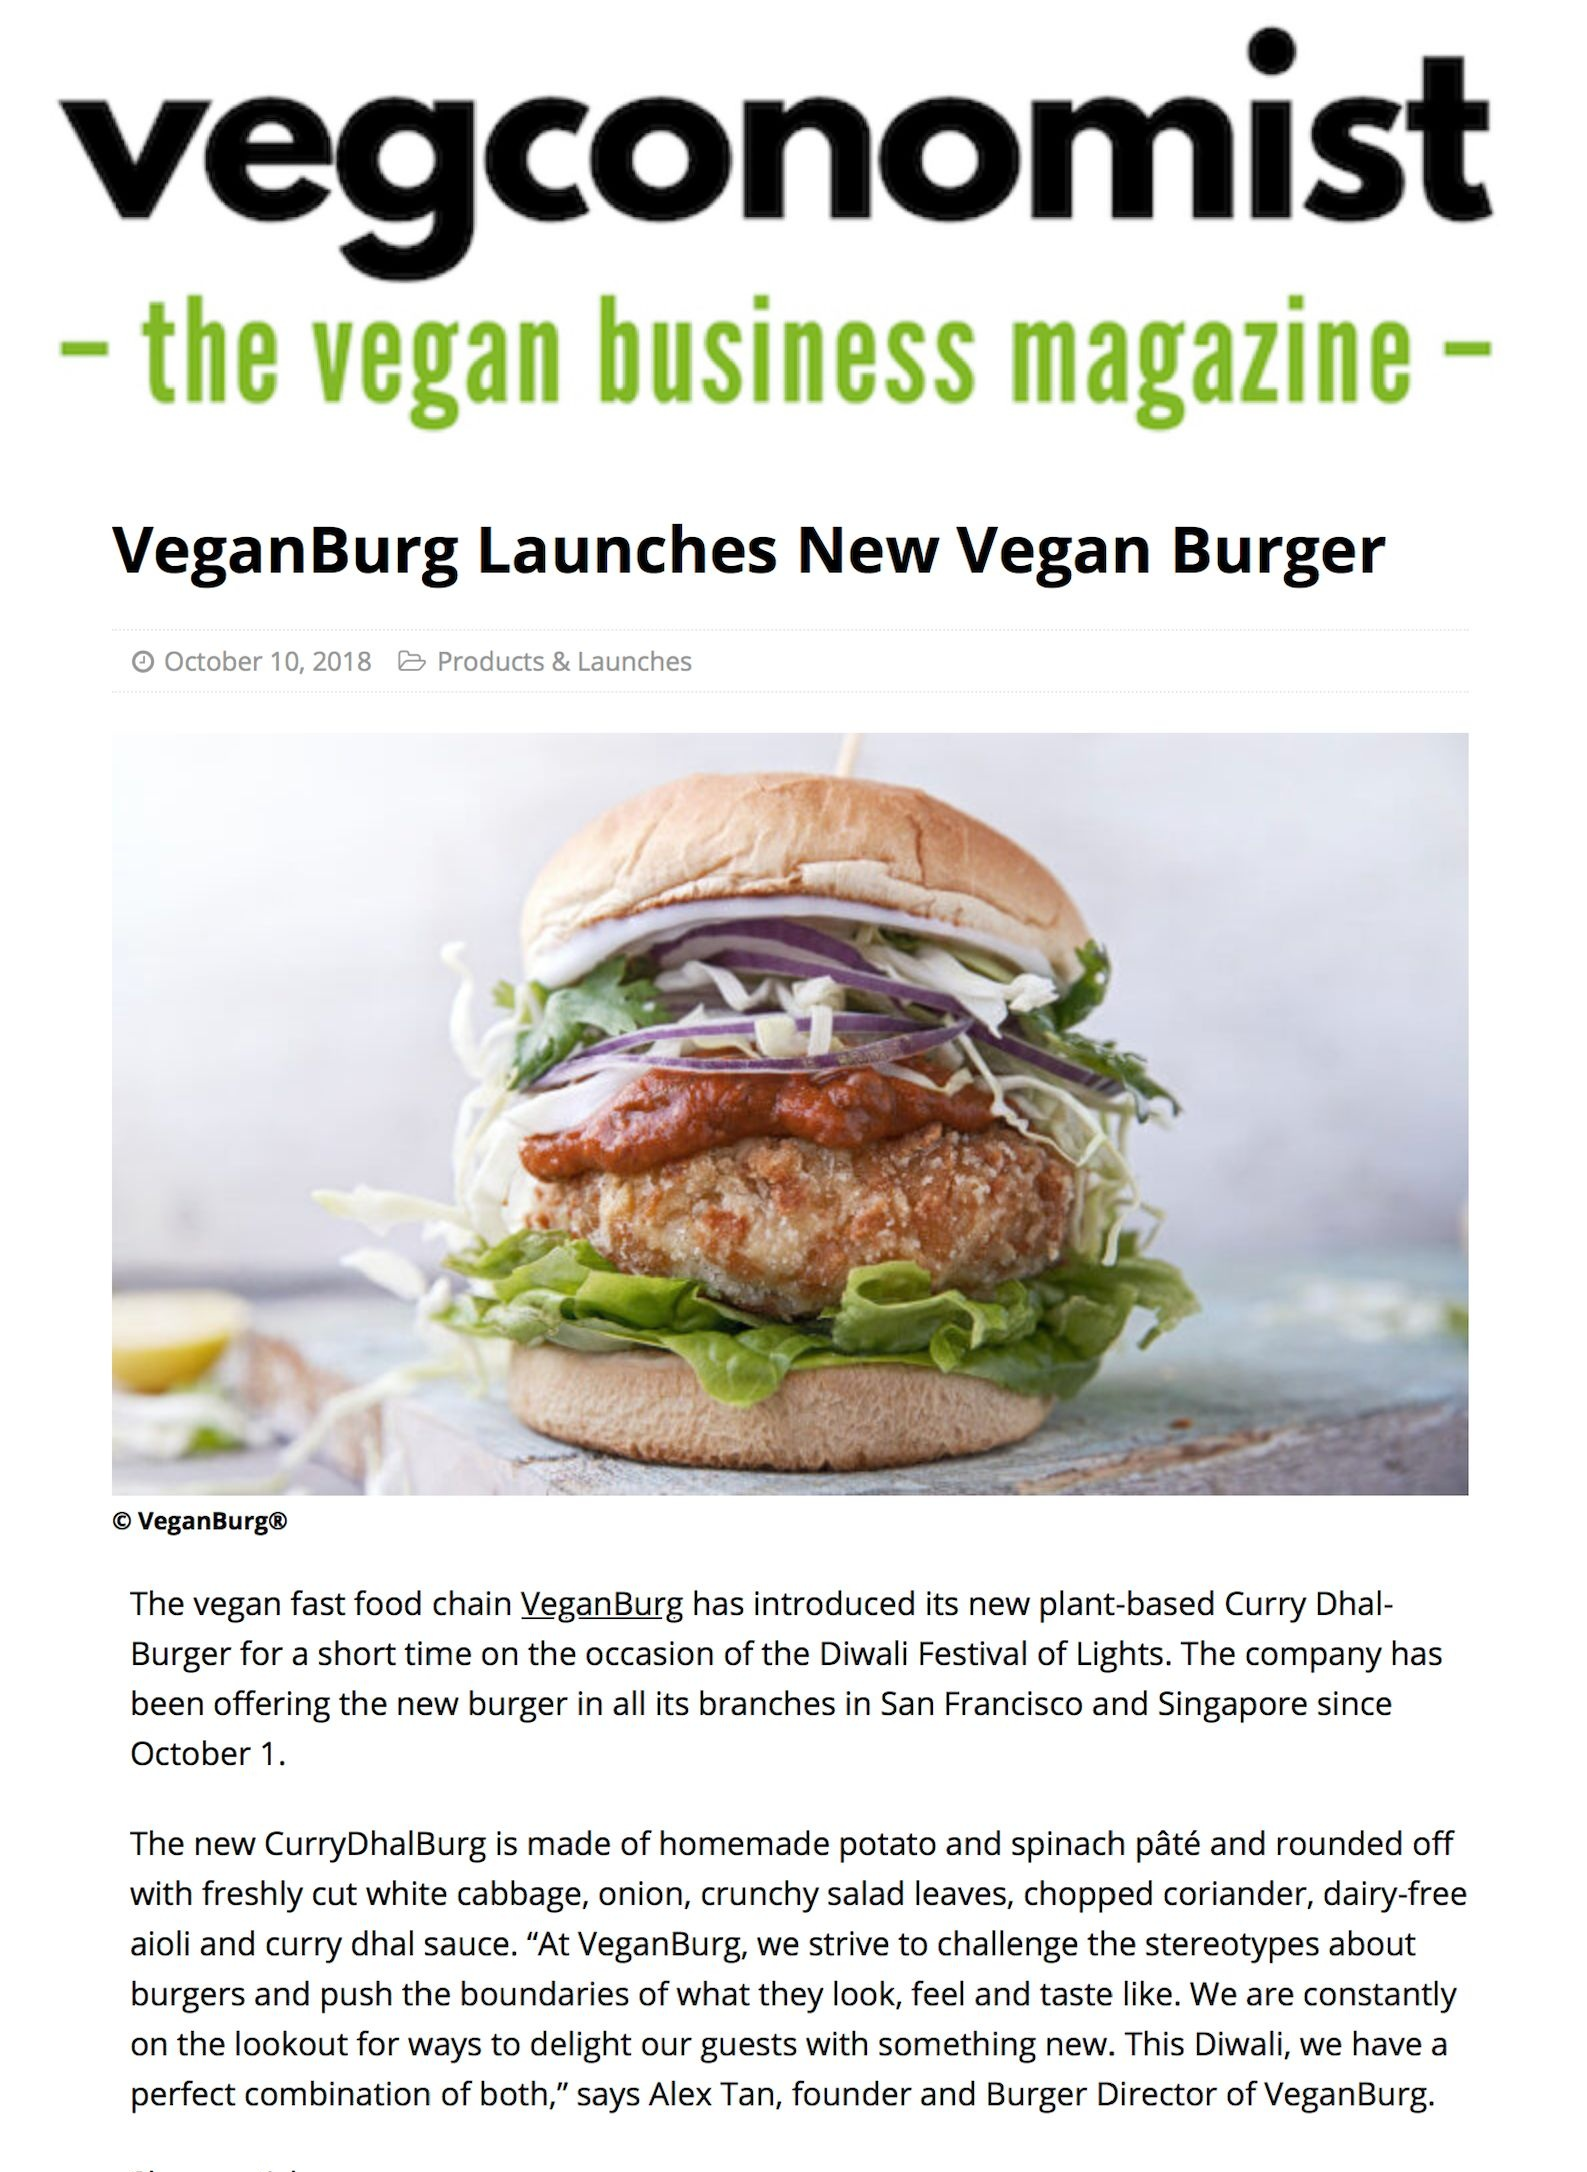 Vegconomist_+VeganBurg+Launches+New+Vegan+Burger.jpg